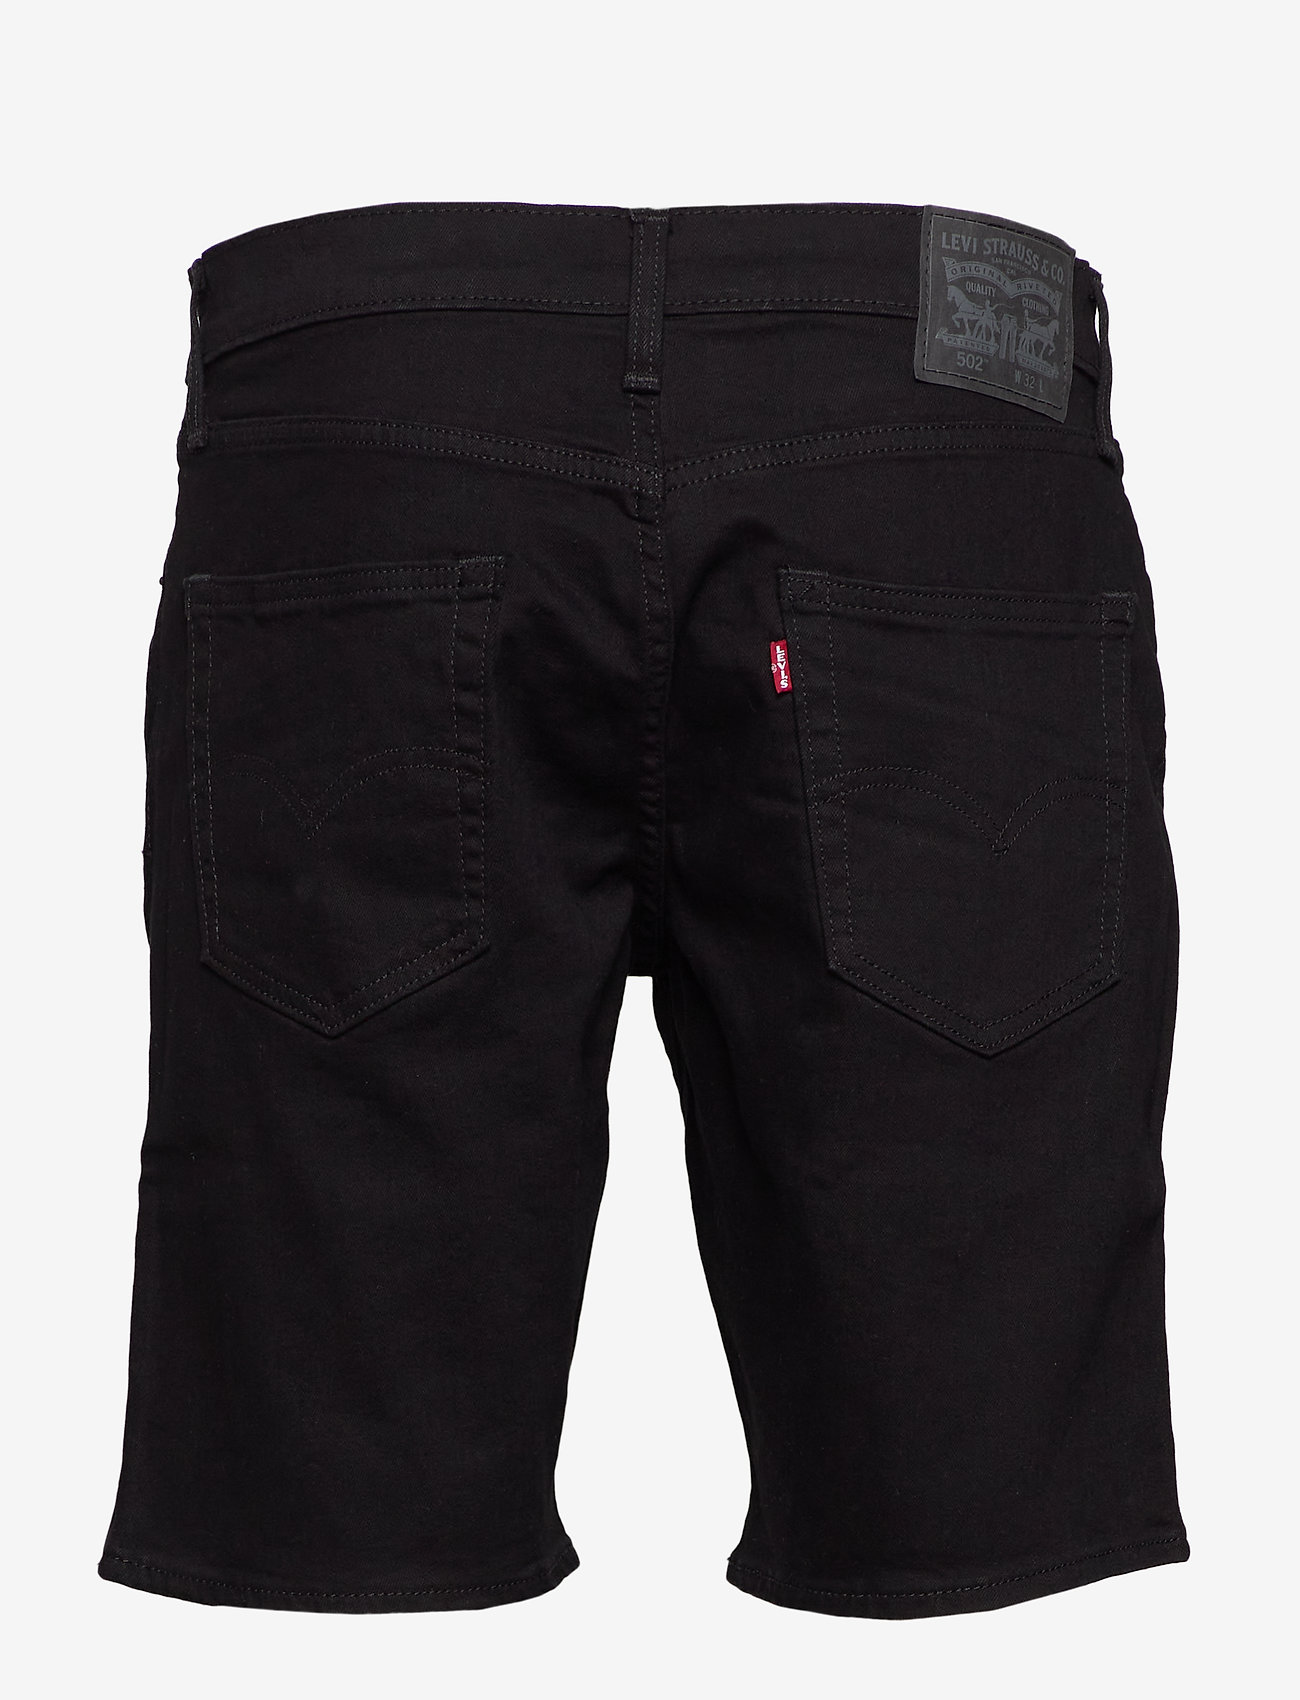 LEVI´S Men - 502 TAPER SHORTS 10 EIGHT BALL - denim shorts - blacks - 1